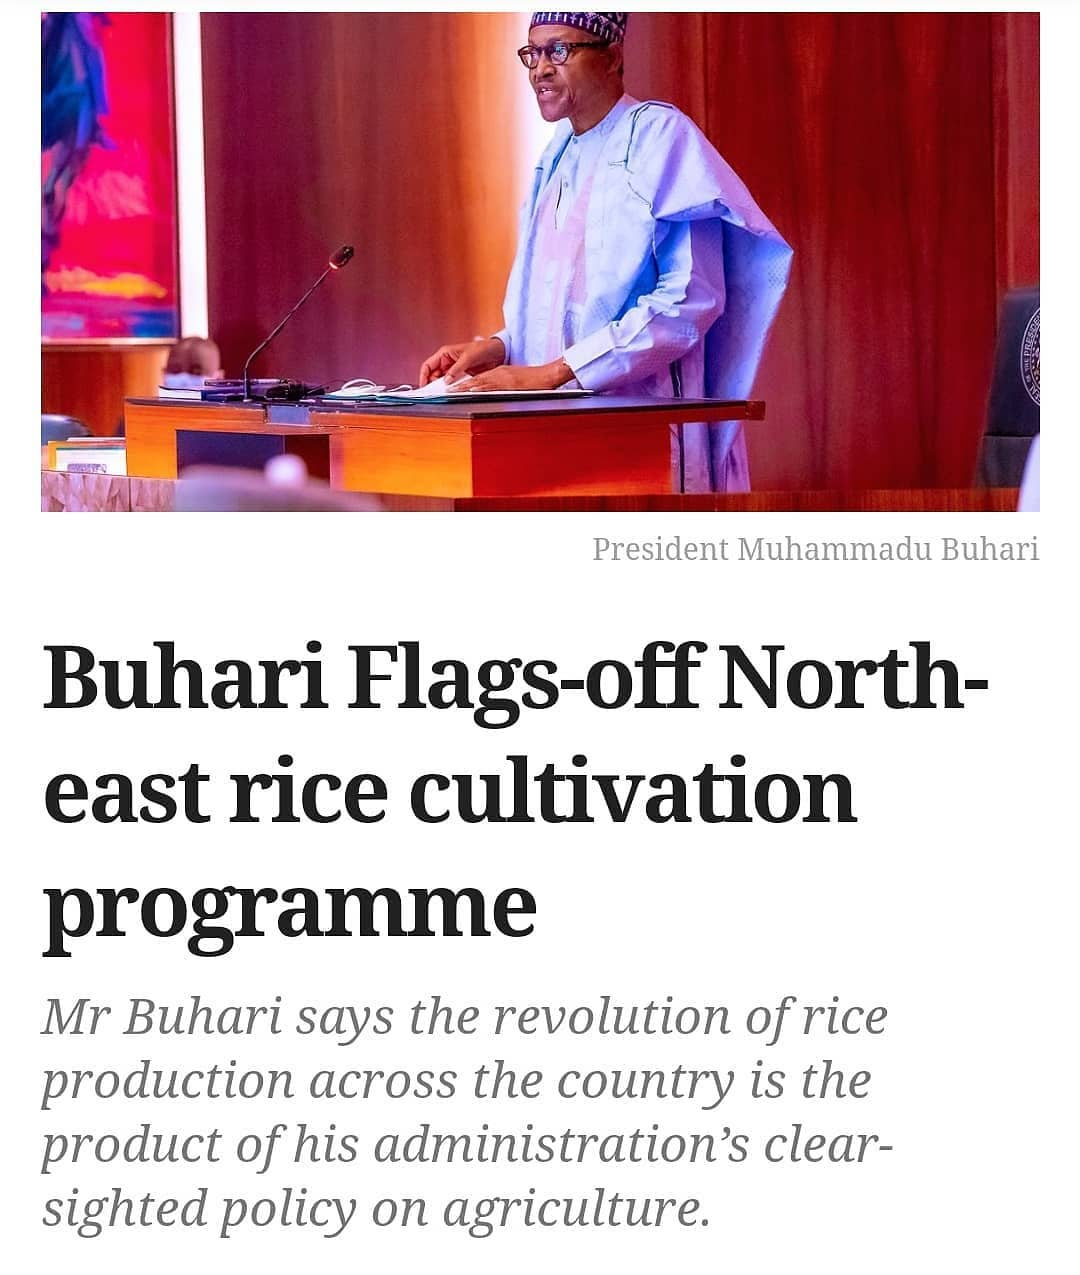 """President Muhammadu Buharihas described the revolution in rice production across the country as a product of his administration's policy and the diligent execution of it by institutions of state such as the Central Bank of Nigeria.  The president spoke at the commemoration of the national rice festival and the flag-off of the North-east 2021 and 2nd cycle 2021 dry season rice cultivation programme and 2020 wet season harvest aggregation and sales of paddy rice to millers held in Gombe State.  Represented by the Kebbi State Governor, Atiku Bagudu, Mr Buhari expressed gratitude to the CBN for solving the problems of financing in agriculture and state governors for championing the causeof rice production and other agricultural commodities. He commended the Governor Inuwa Yahaya of Gombe State for reviving the cotton value chain for which the state was once known for.  The president said despite limited resources, his administration had achieved monumental results in the agricultural production and its value chain, saying a lot of infrastructural projects that will galvanize economic activities were being undertaken across the country for the benefit of all Nigerians. In his remark, Mr Yahaya said but for the policy direction of the president and the sound support of the CBN, the heaps of rice pyramids on display would not have been possible. """"The pyramids are back and we are happy to see this and let me recall that only in January the Management of Central Bank with the National Cotton Association were here in Gombe and they kick-started the aggregation process of cotton farmers who equally paid the facilities they took in kind to signal the return of cotton production.""""  He said the state was a shining example in the anchor borrower programme of the Central Bank of Nigeria, owing to the fact that farmers in the state were poised on taking advantage of the programme to boost agricultural production and eventually pay in kind facilities obtained to maintain sustainabili"""